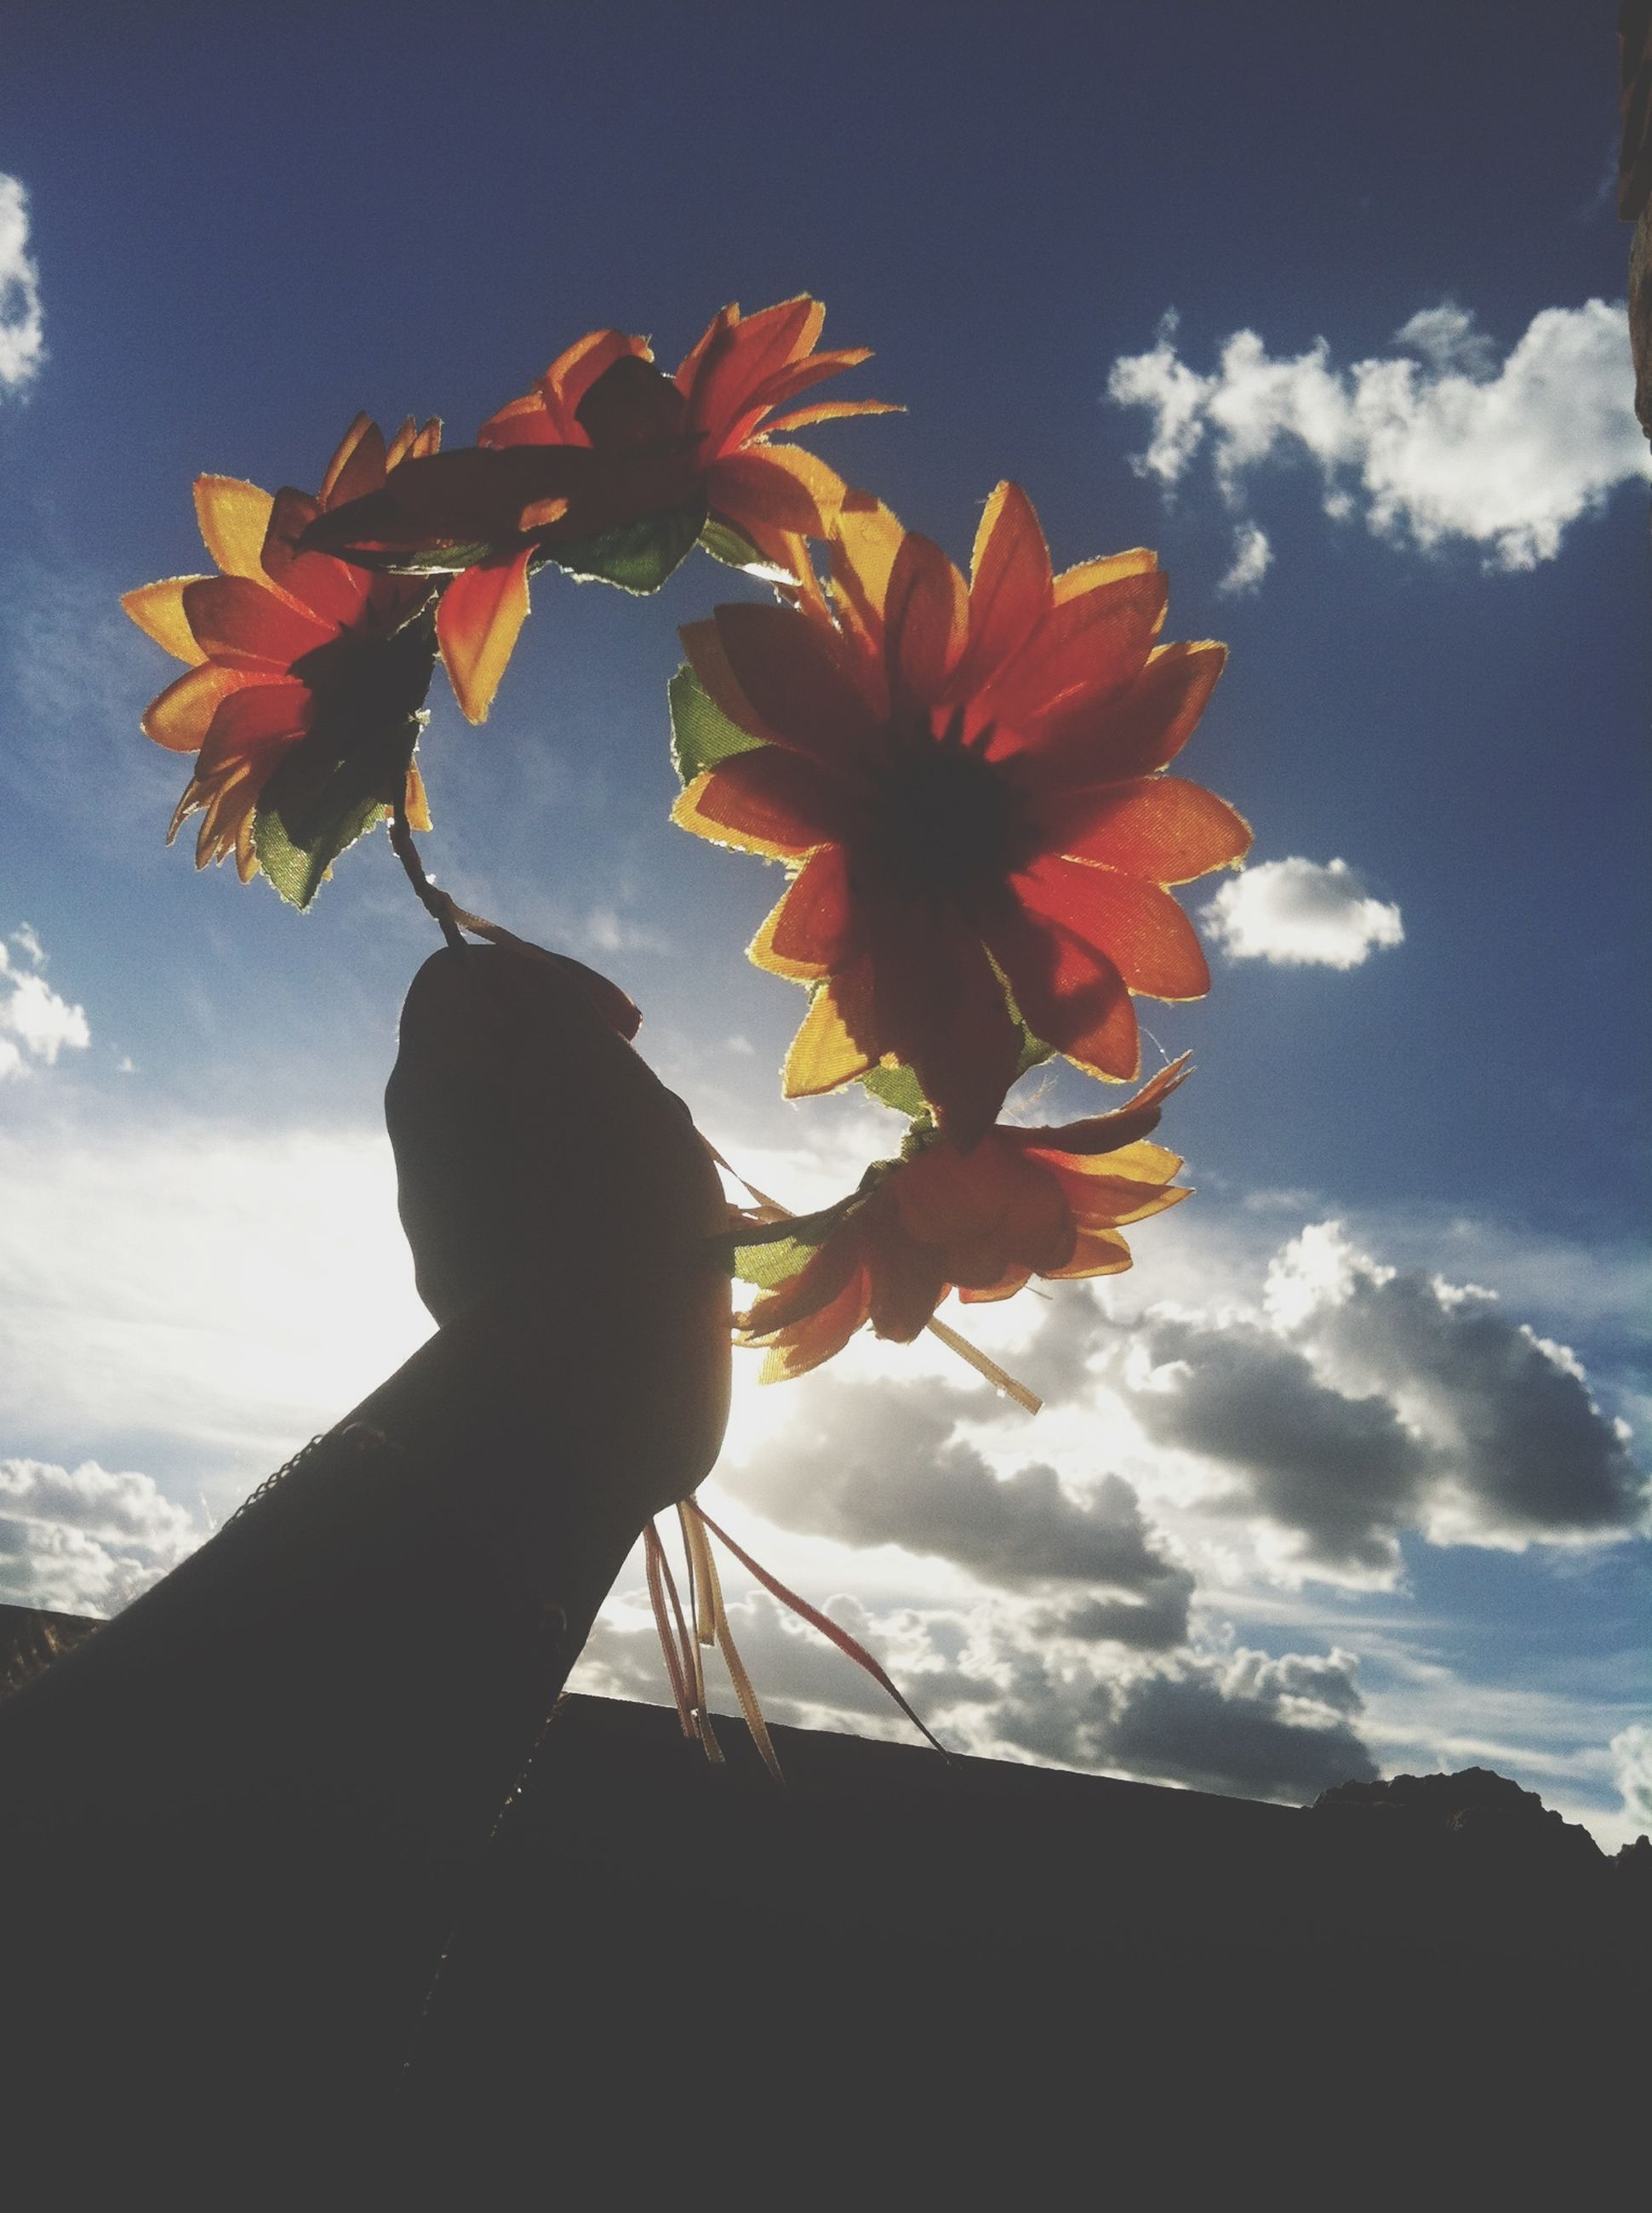 sky, flower, low angle view, cloud - sky, beauty in nature, nature, fragility, petal, growth, cloud, one person, freshness, close-up, plant, leaf, silhouette, part of, sunlight, person, orange color